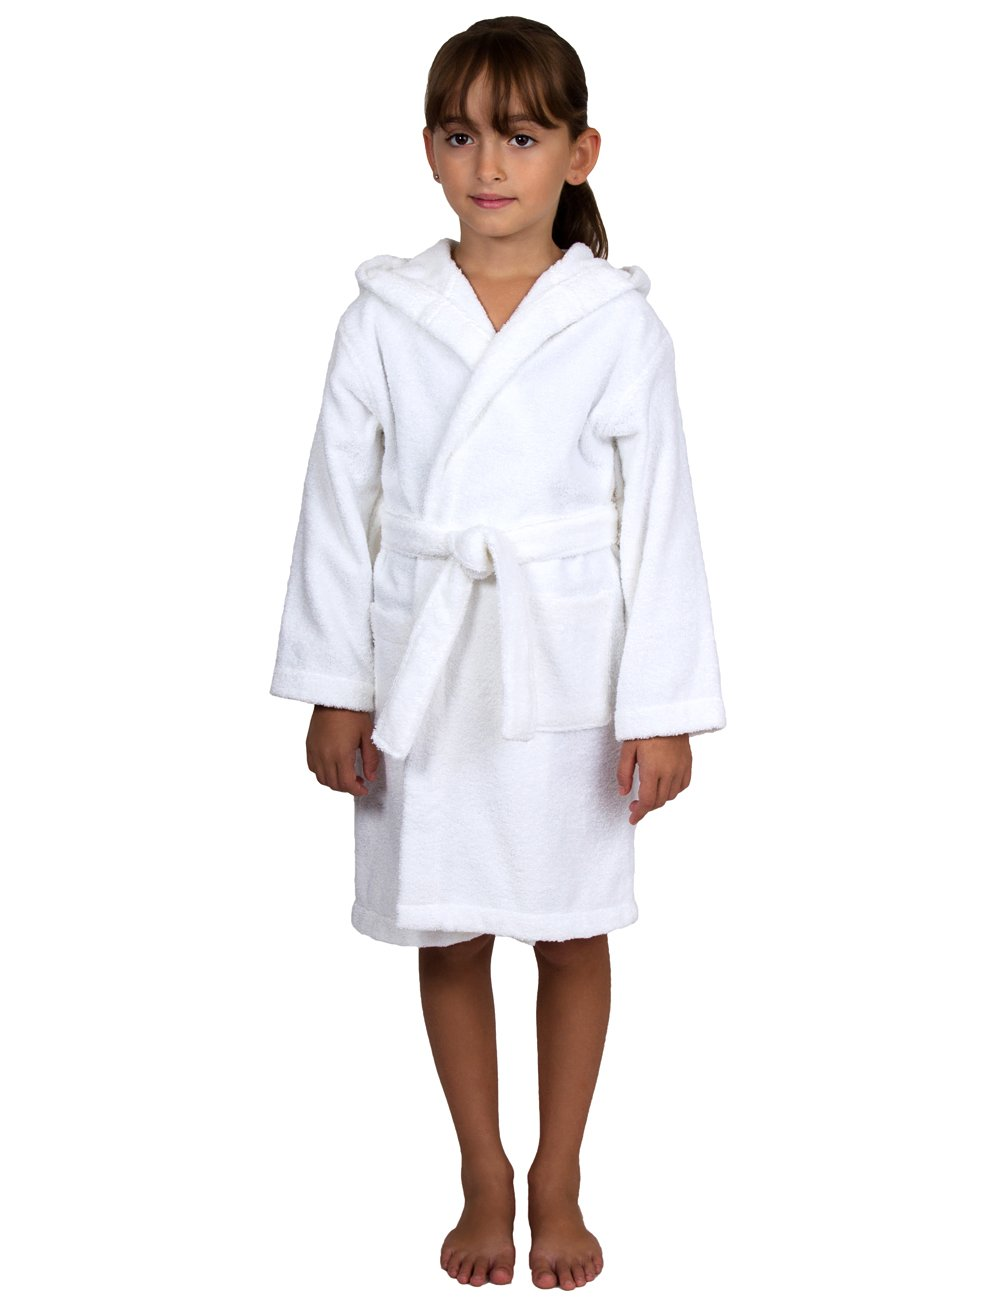 TowelSelections Big Girls Robe, Kids Hooded Cotton Terry Bathrobe Cover-up Size 8 White